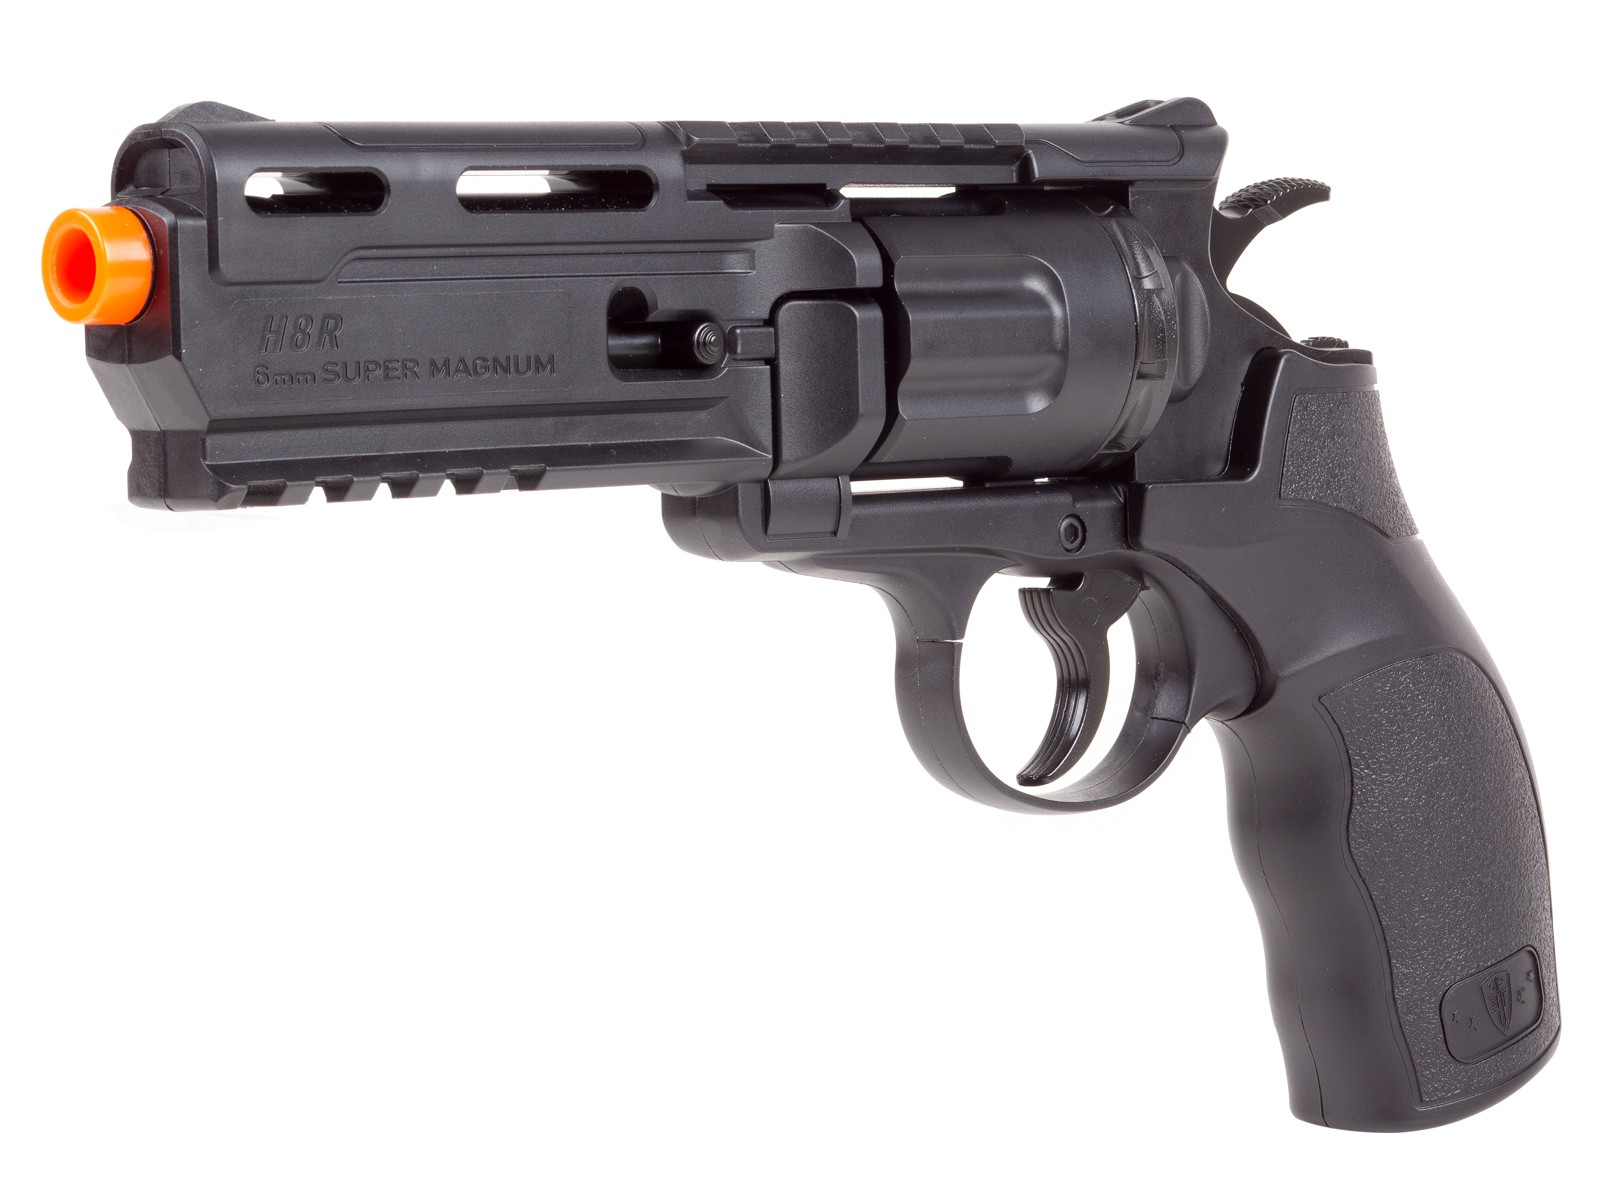 Elite_Force_H8R__CO2_Airsoft_Revolver_6mm